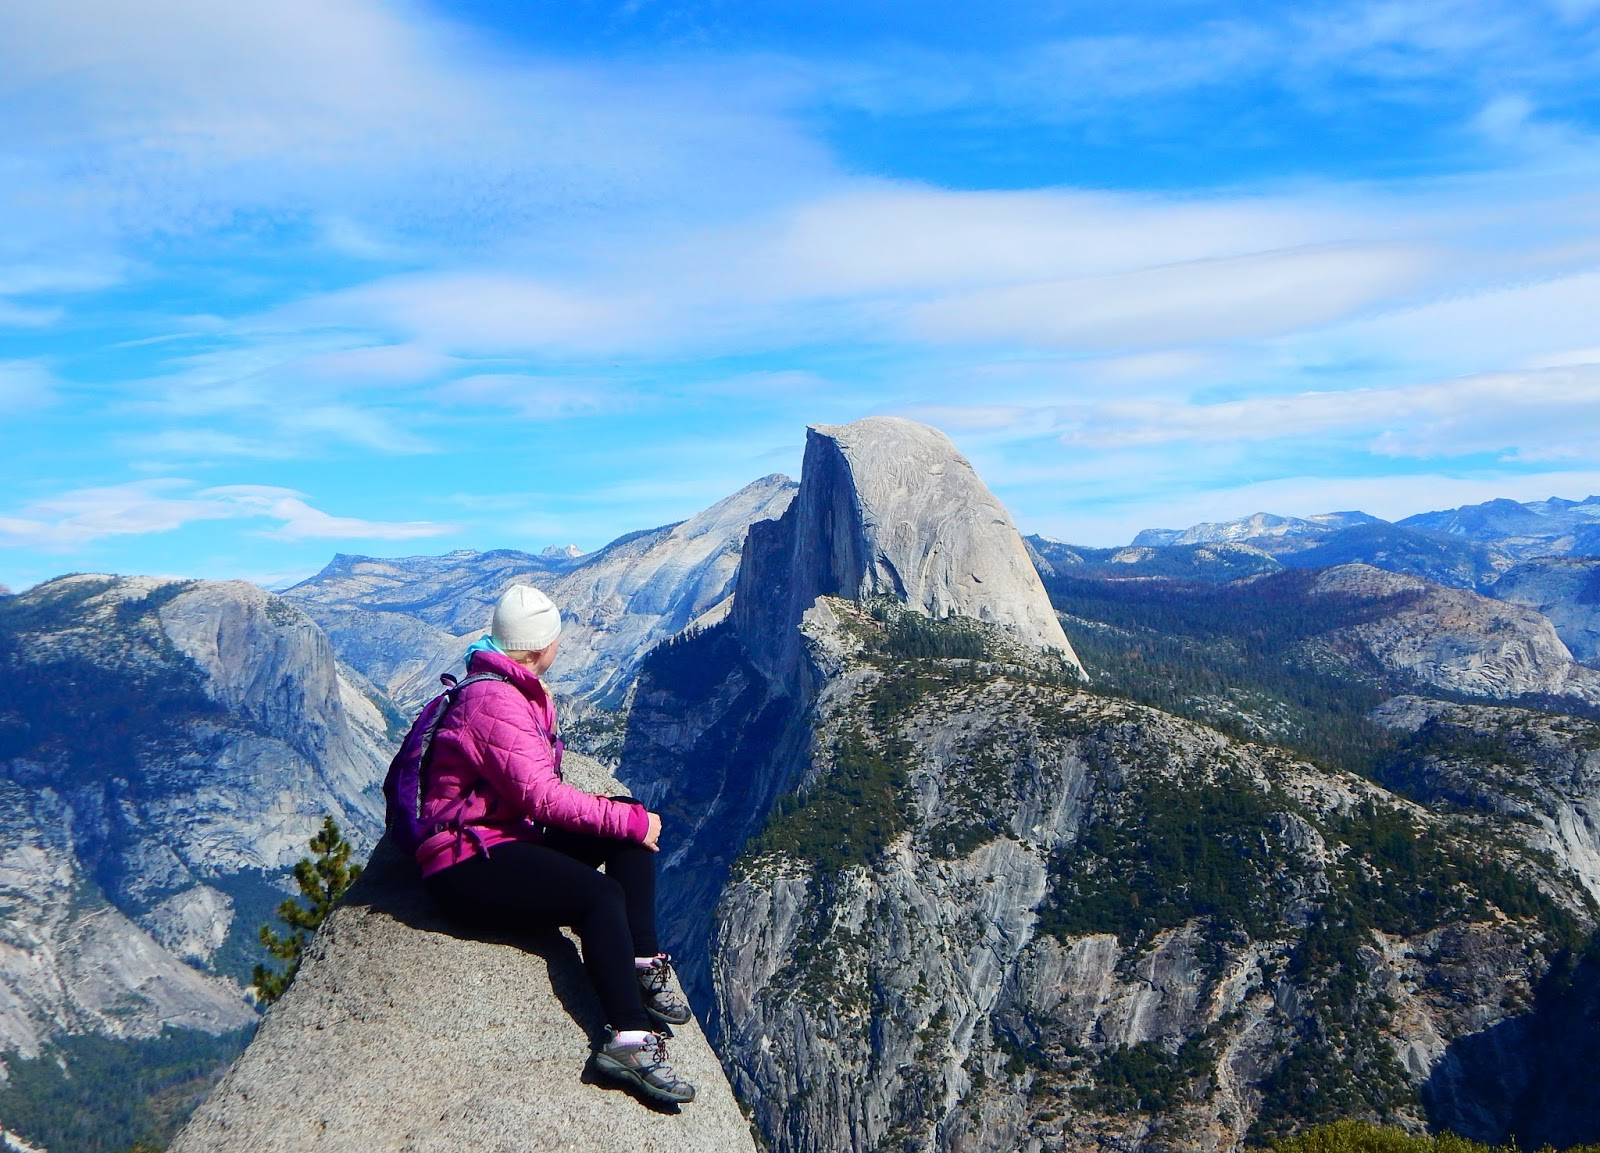 Exploring Yosemite with High Sierra